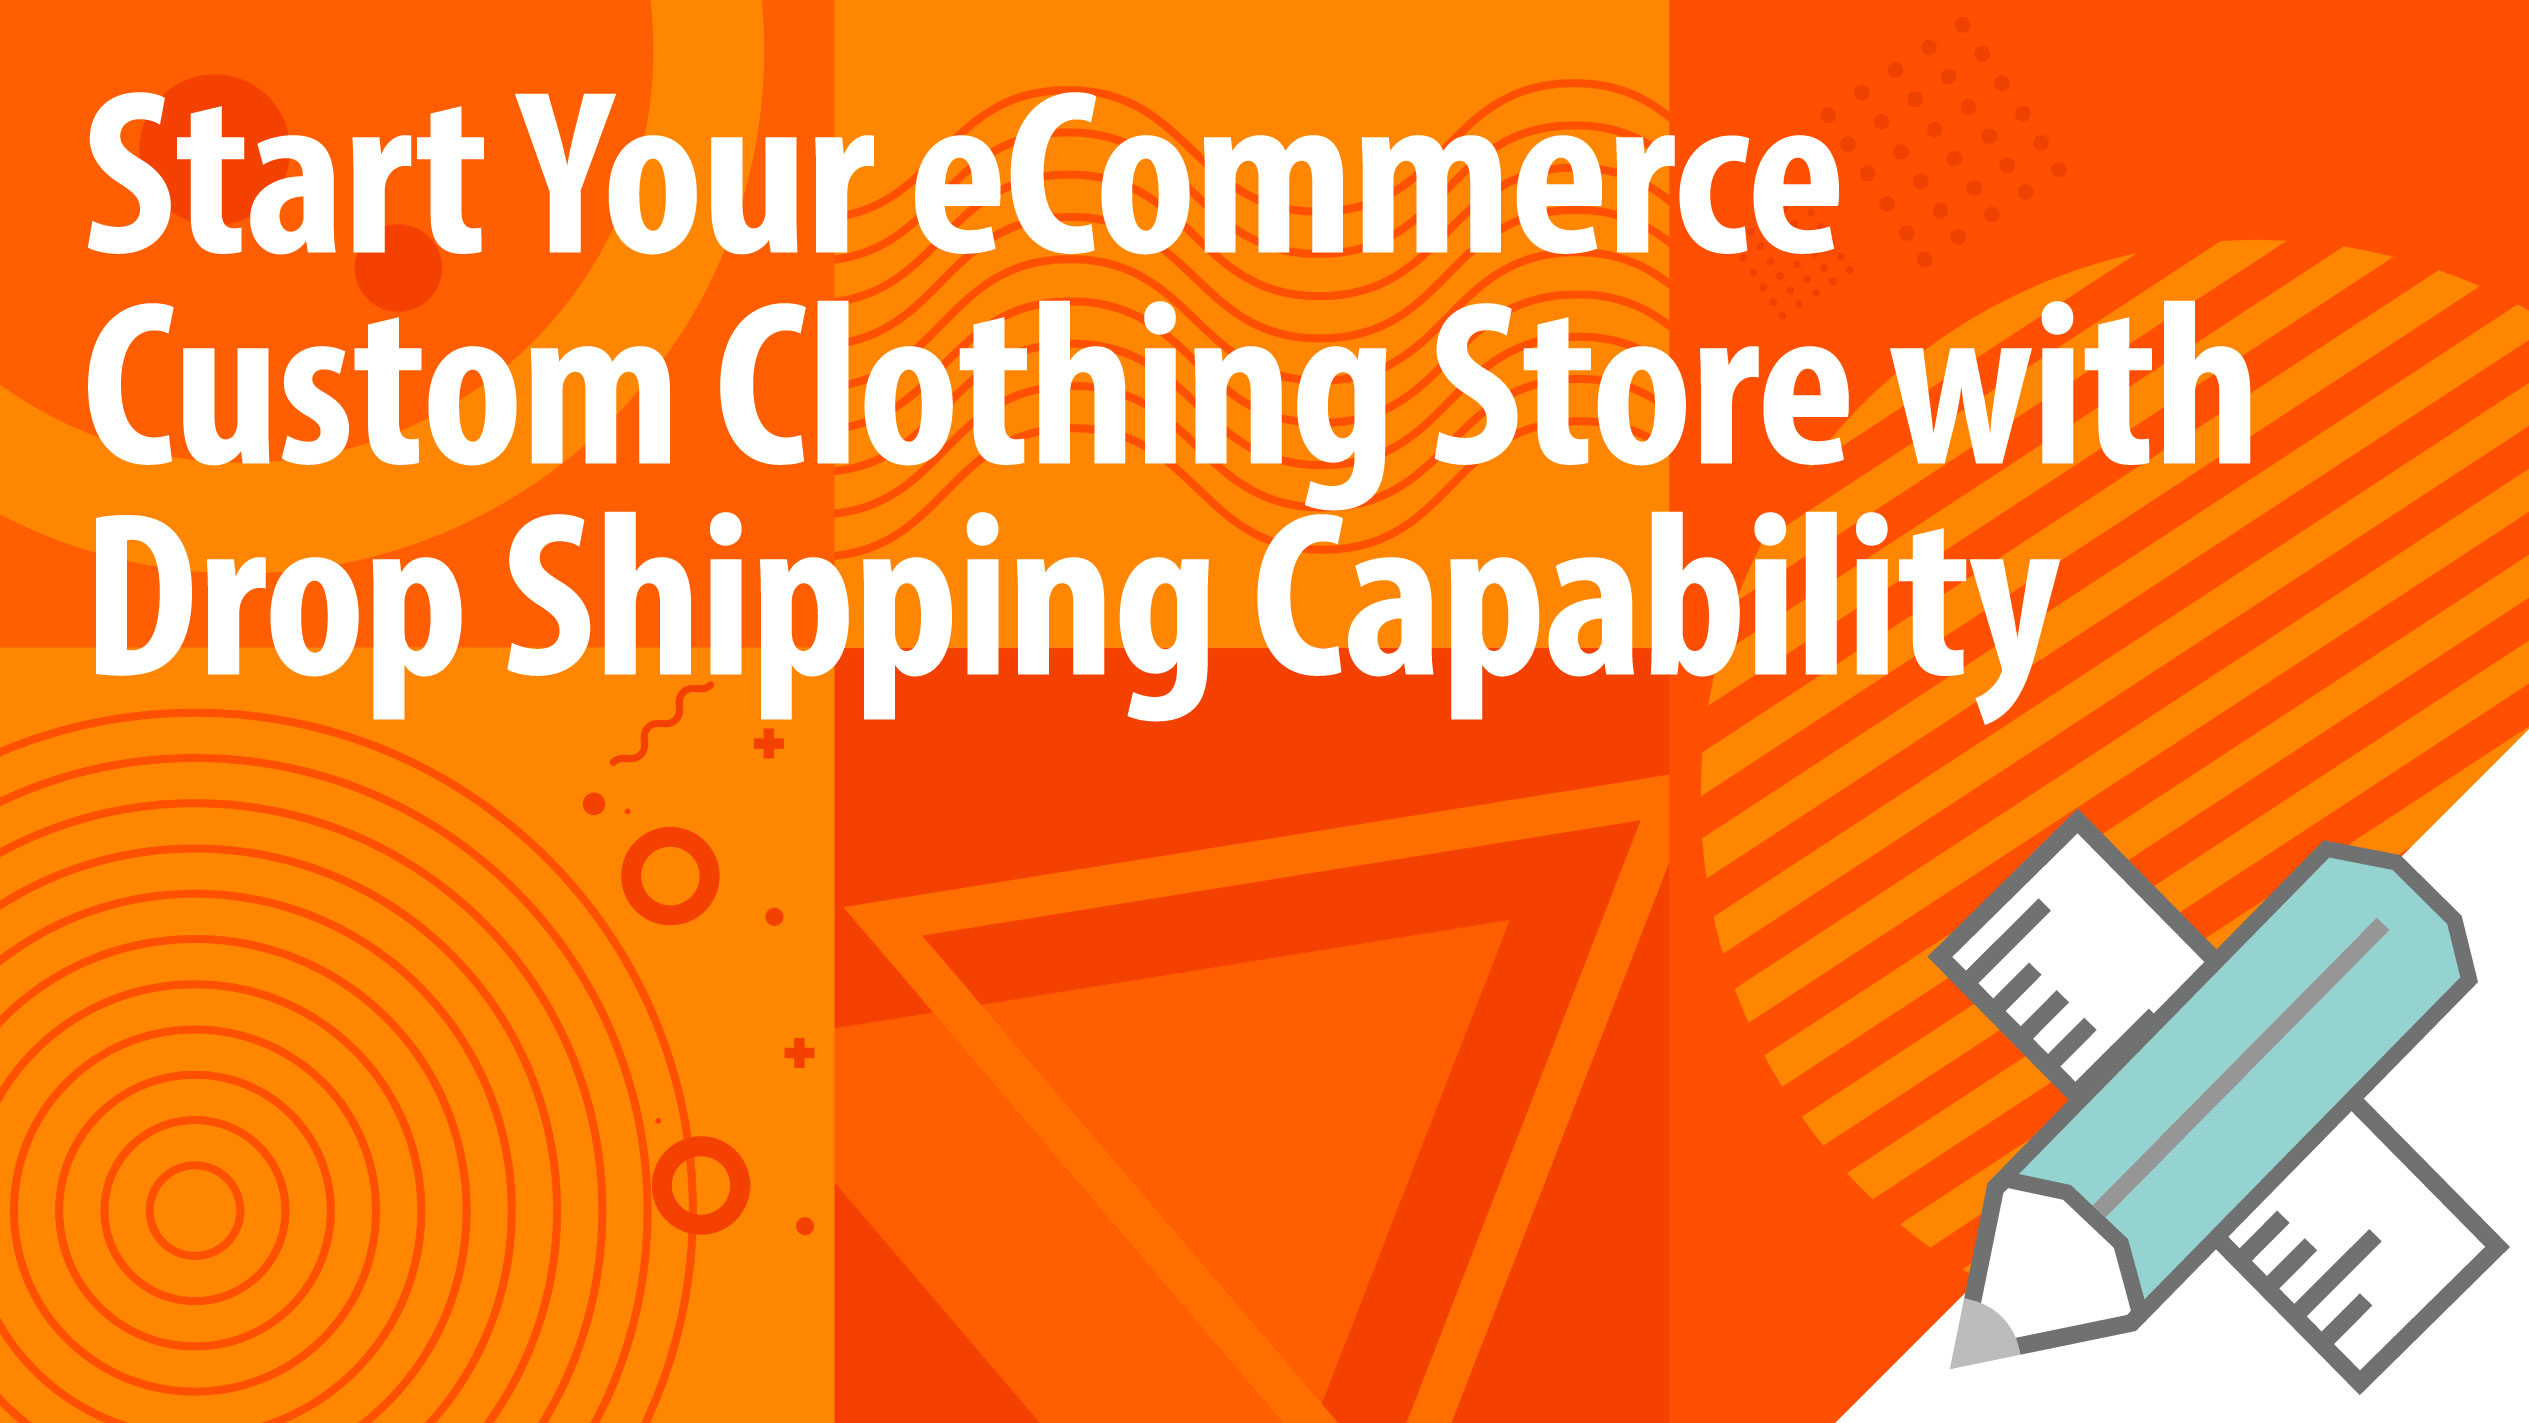 Start Your eCommerce Custom Clothing Store with Drop Shipping Capability